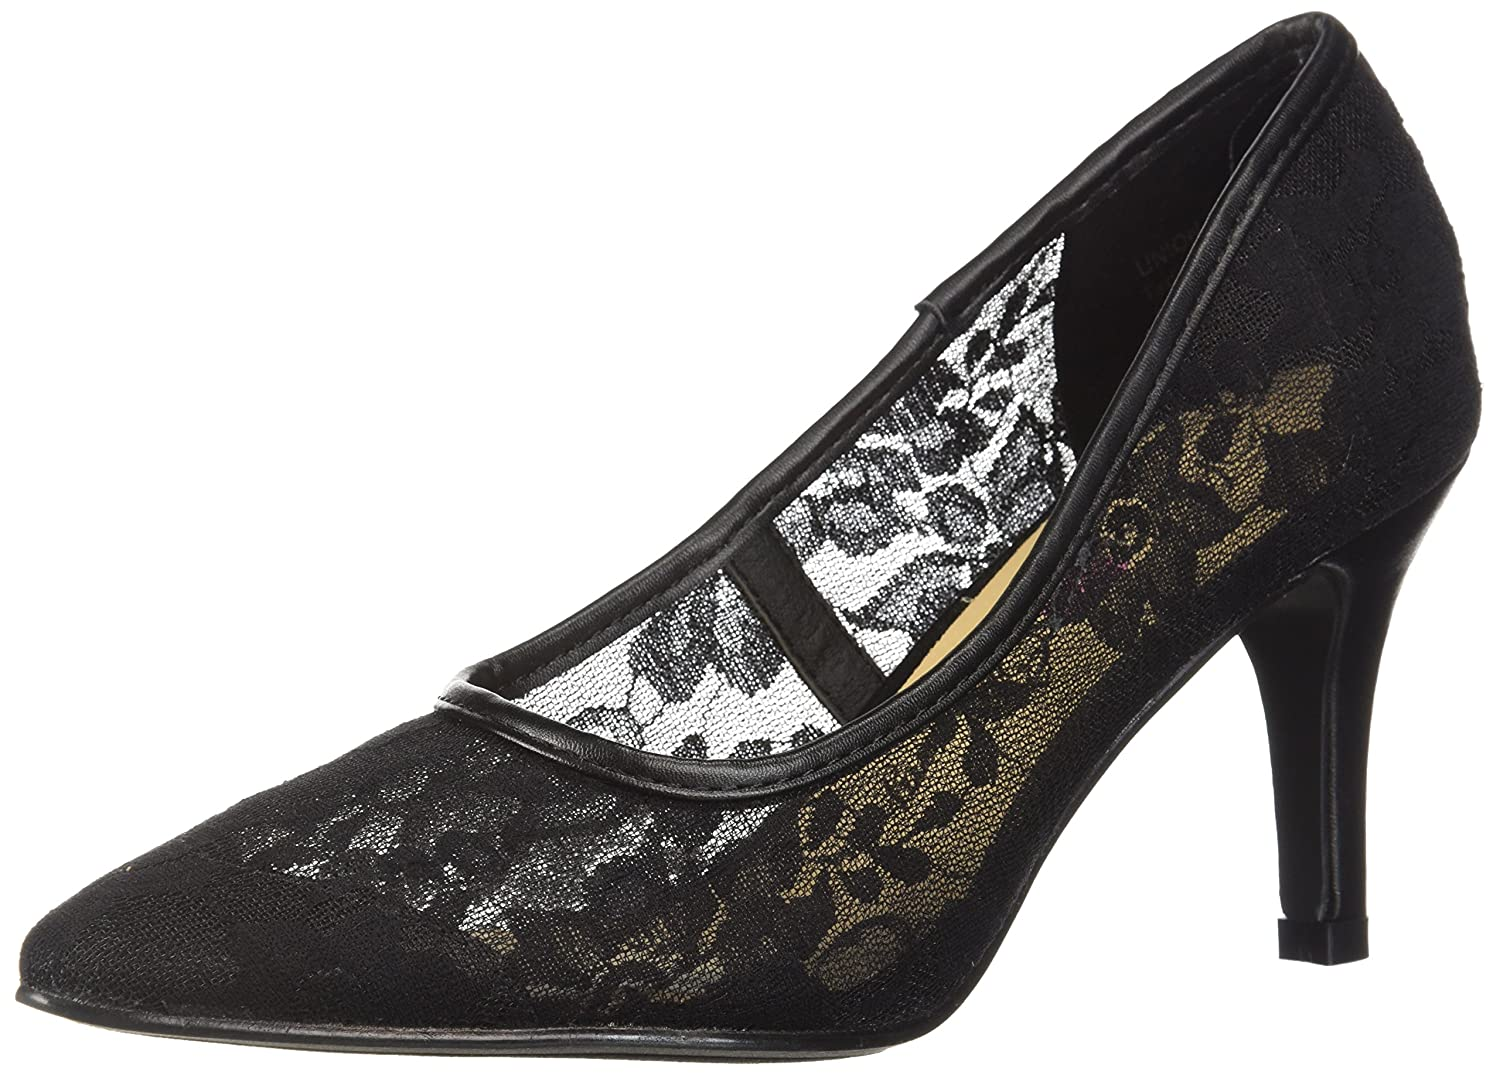 Penny Loves Kenny Women's Union Fl Pump B076FKCLBG 8.5 W US|Black Lace